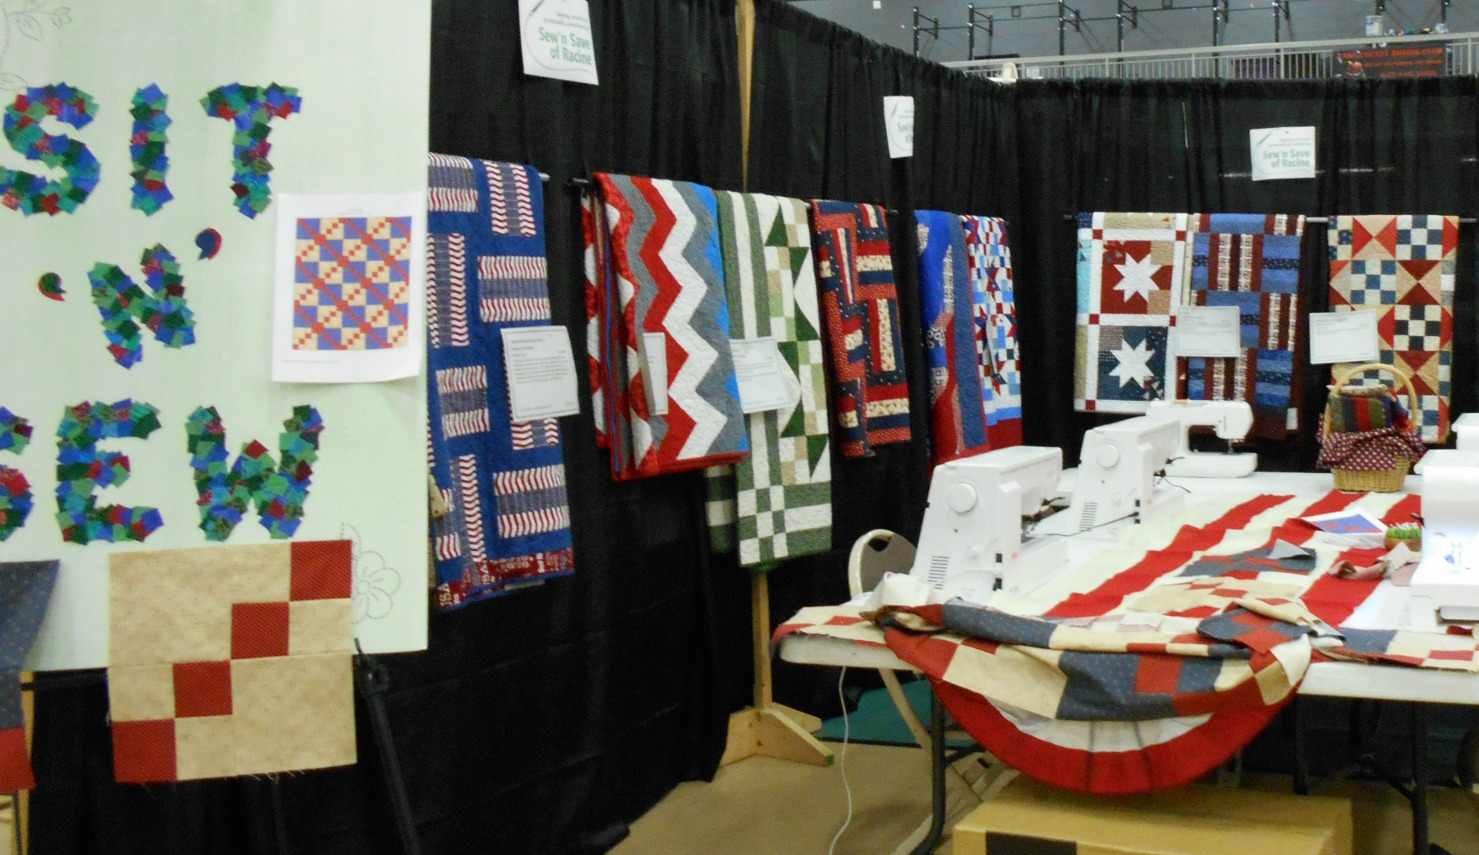 Sit 'n' Sew area from the 2015 Quilt Show.